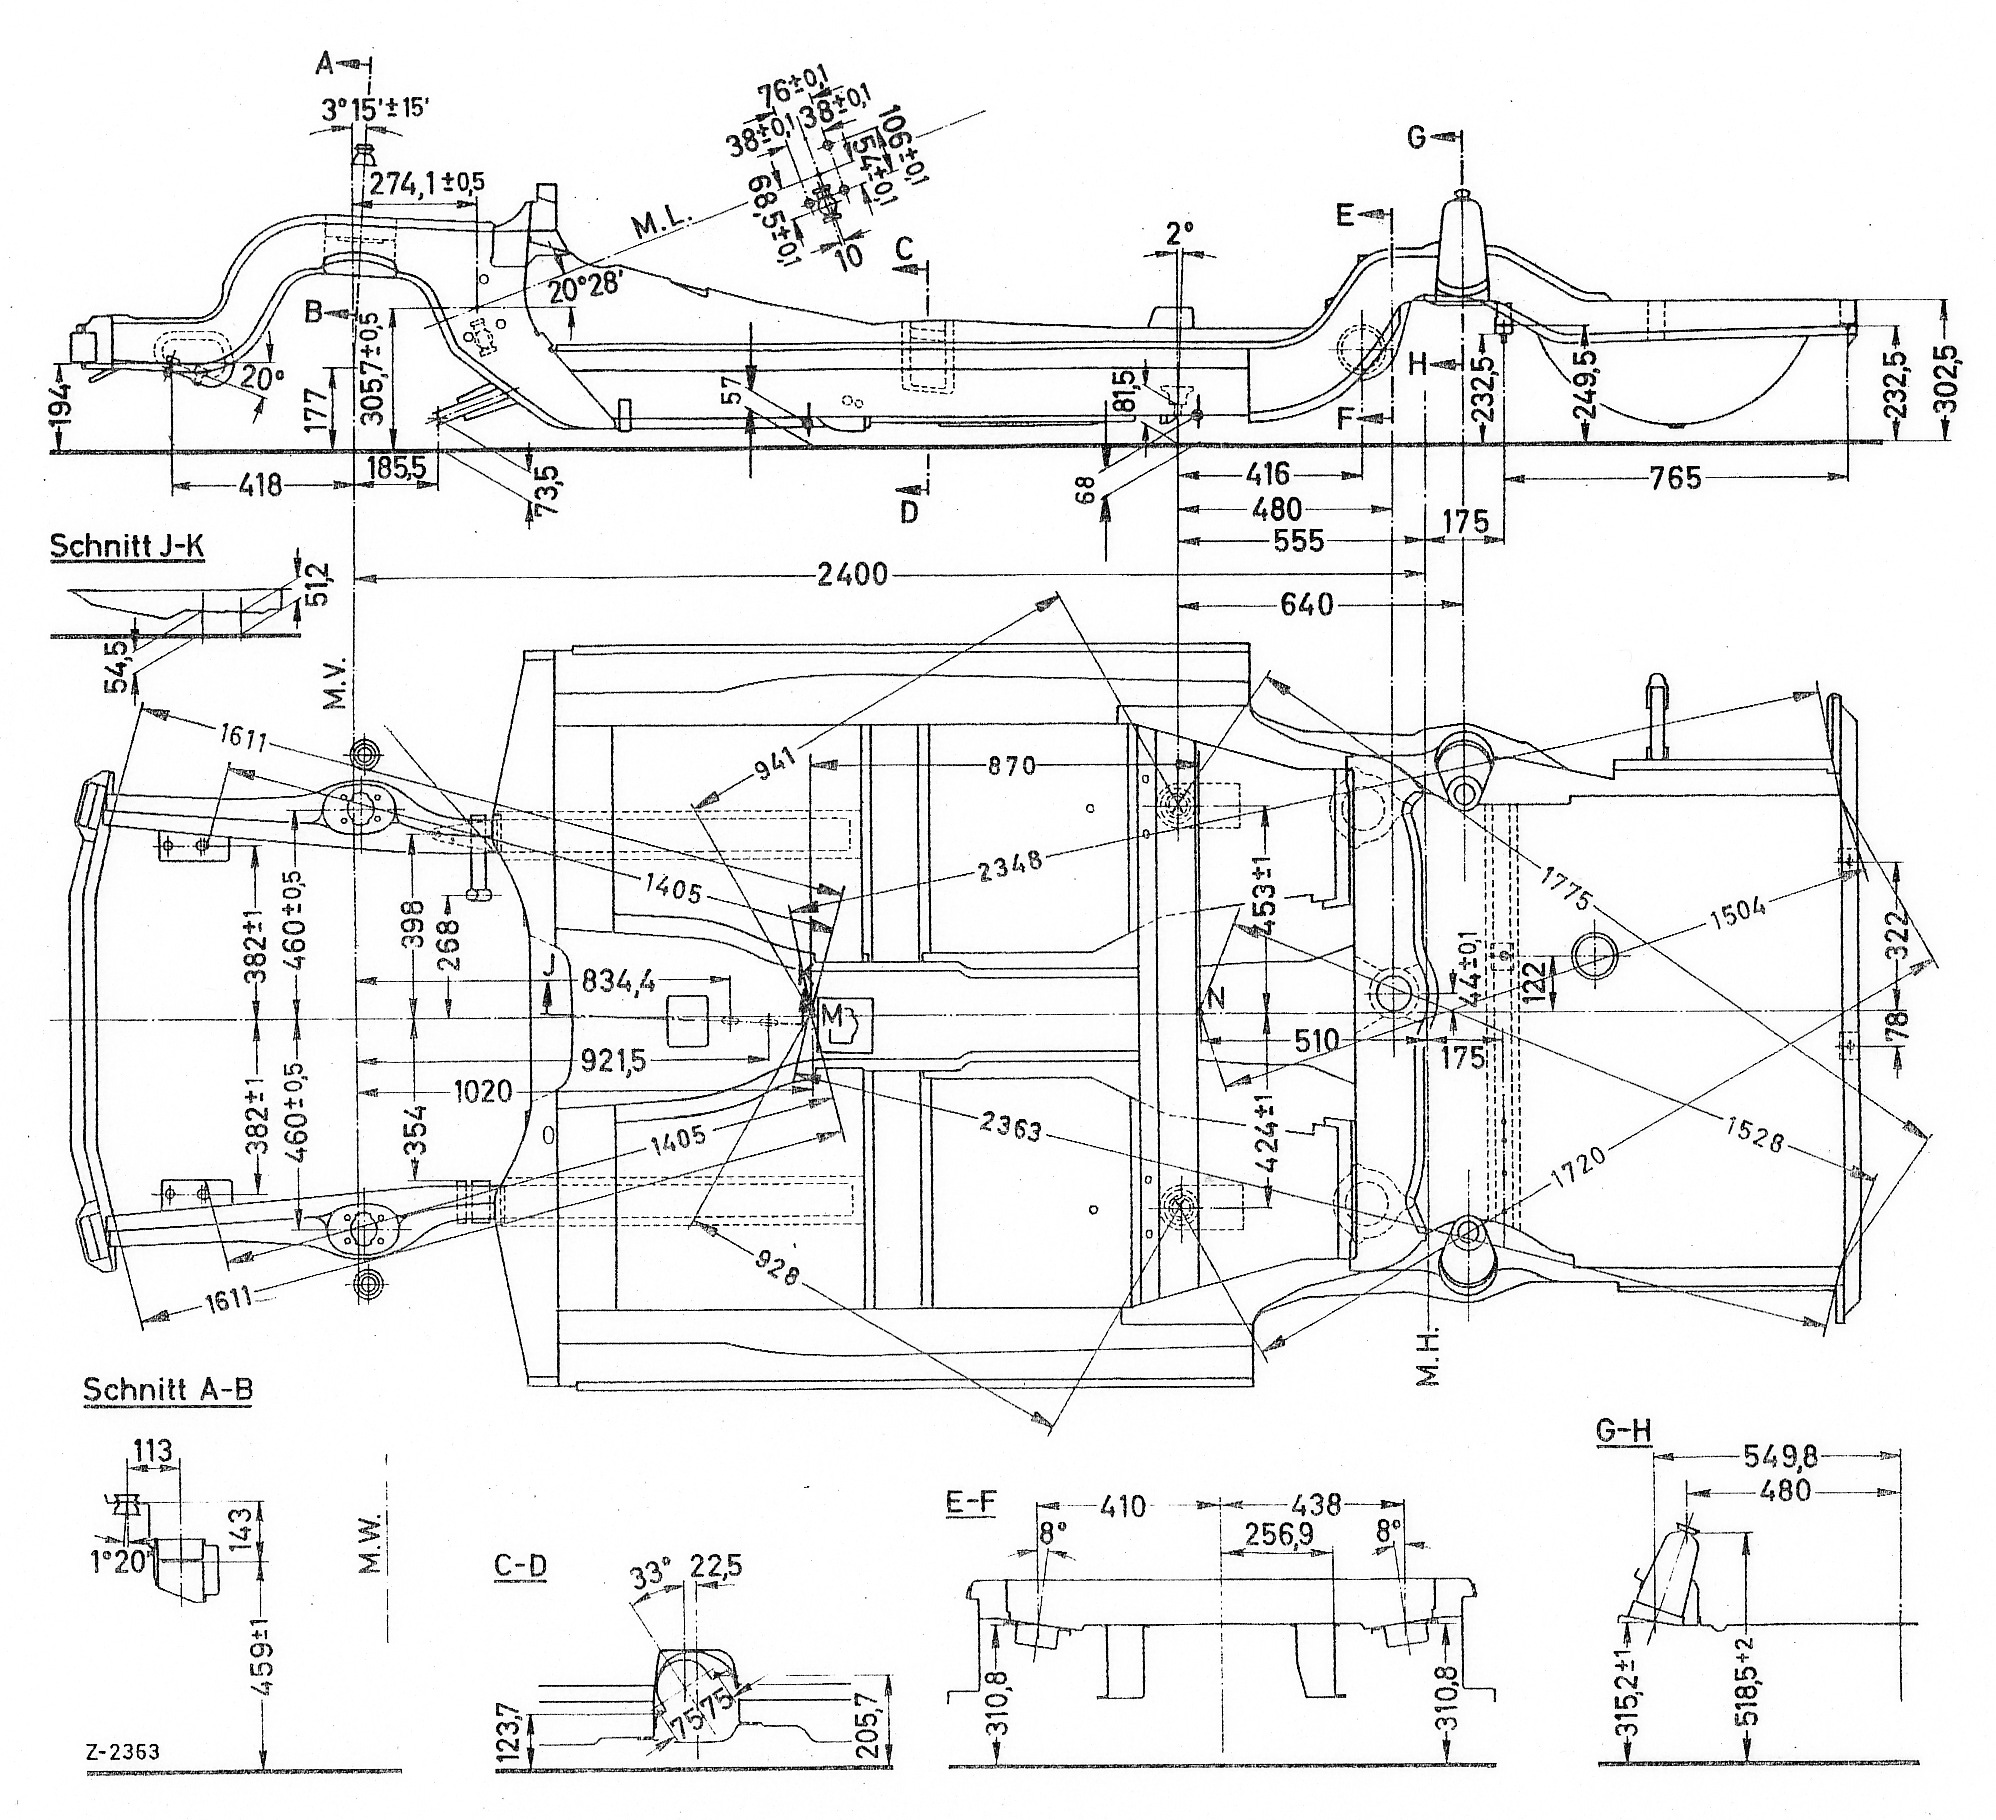 Pagoda SL Group Technical Manual :: ChassisBody / Chassis